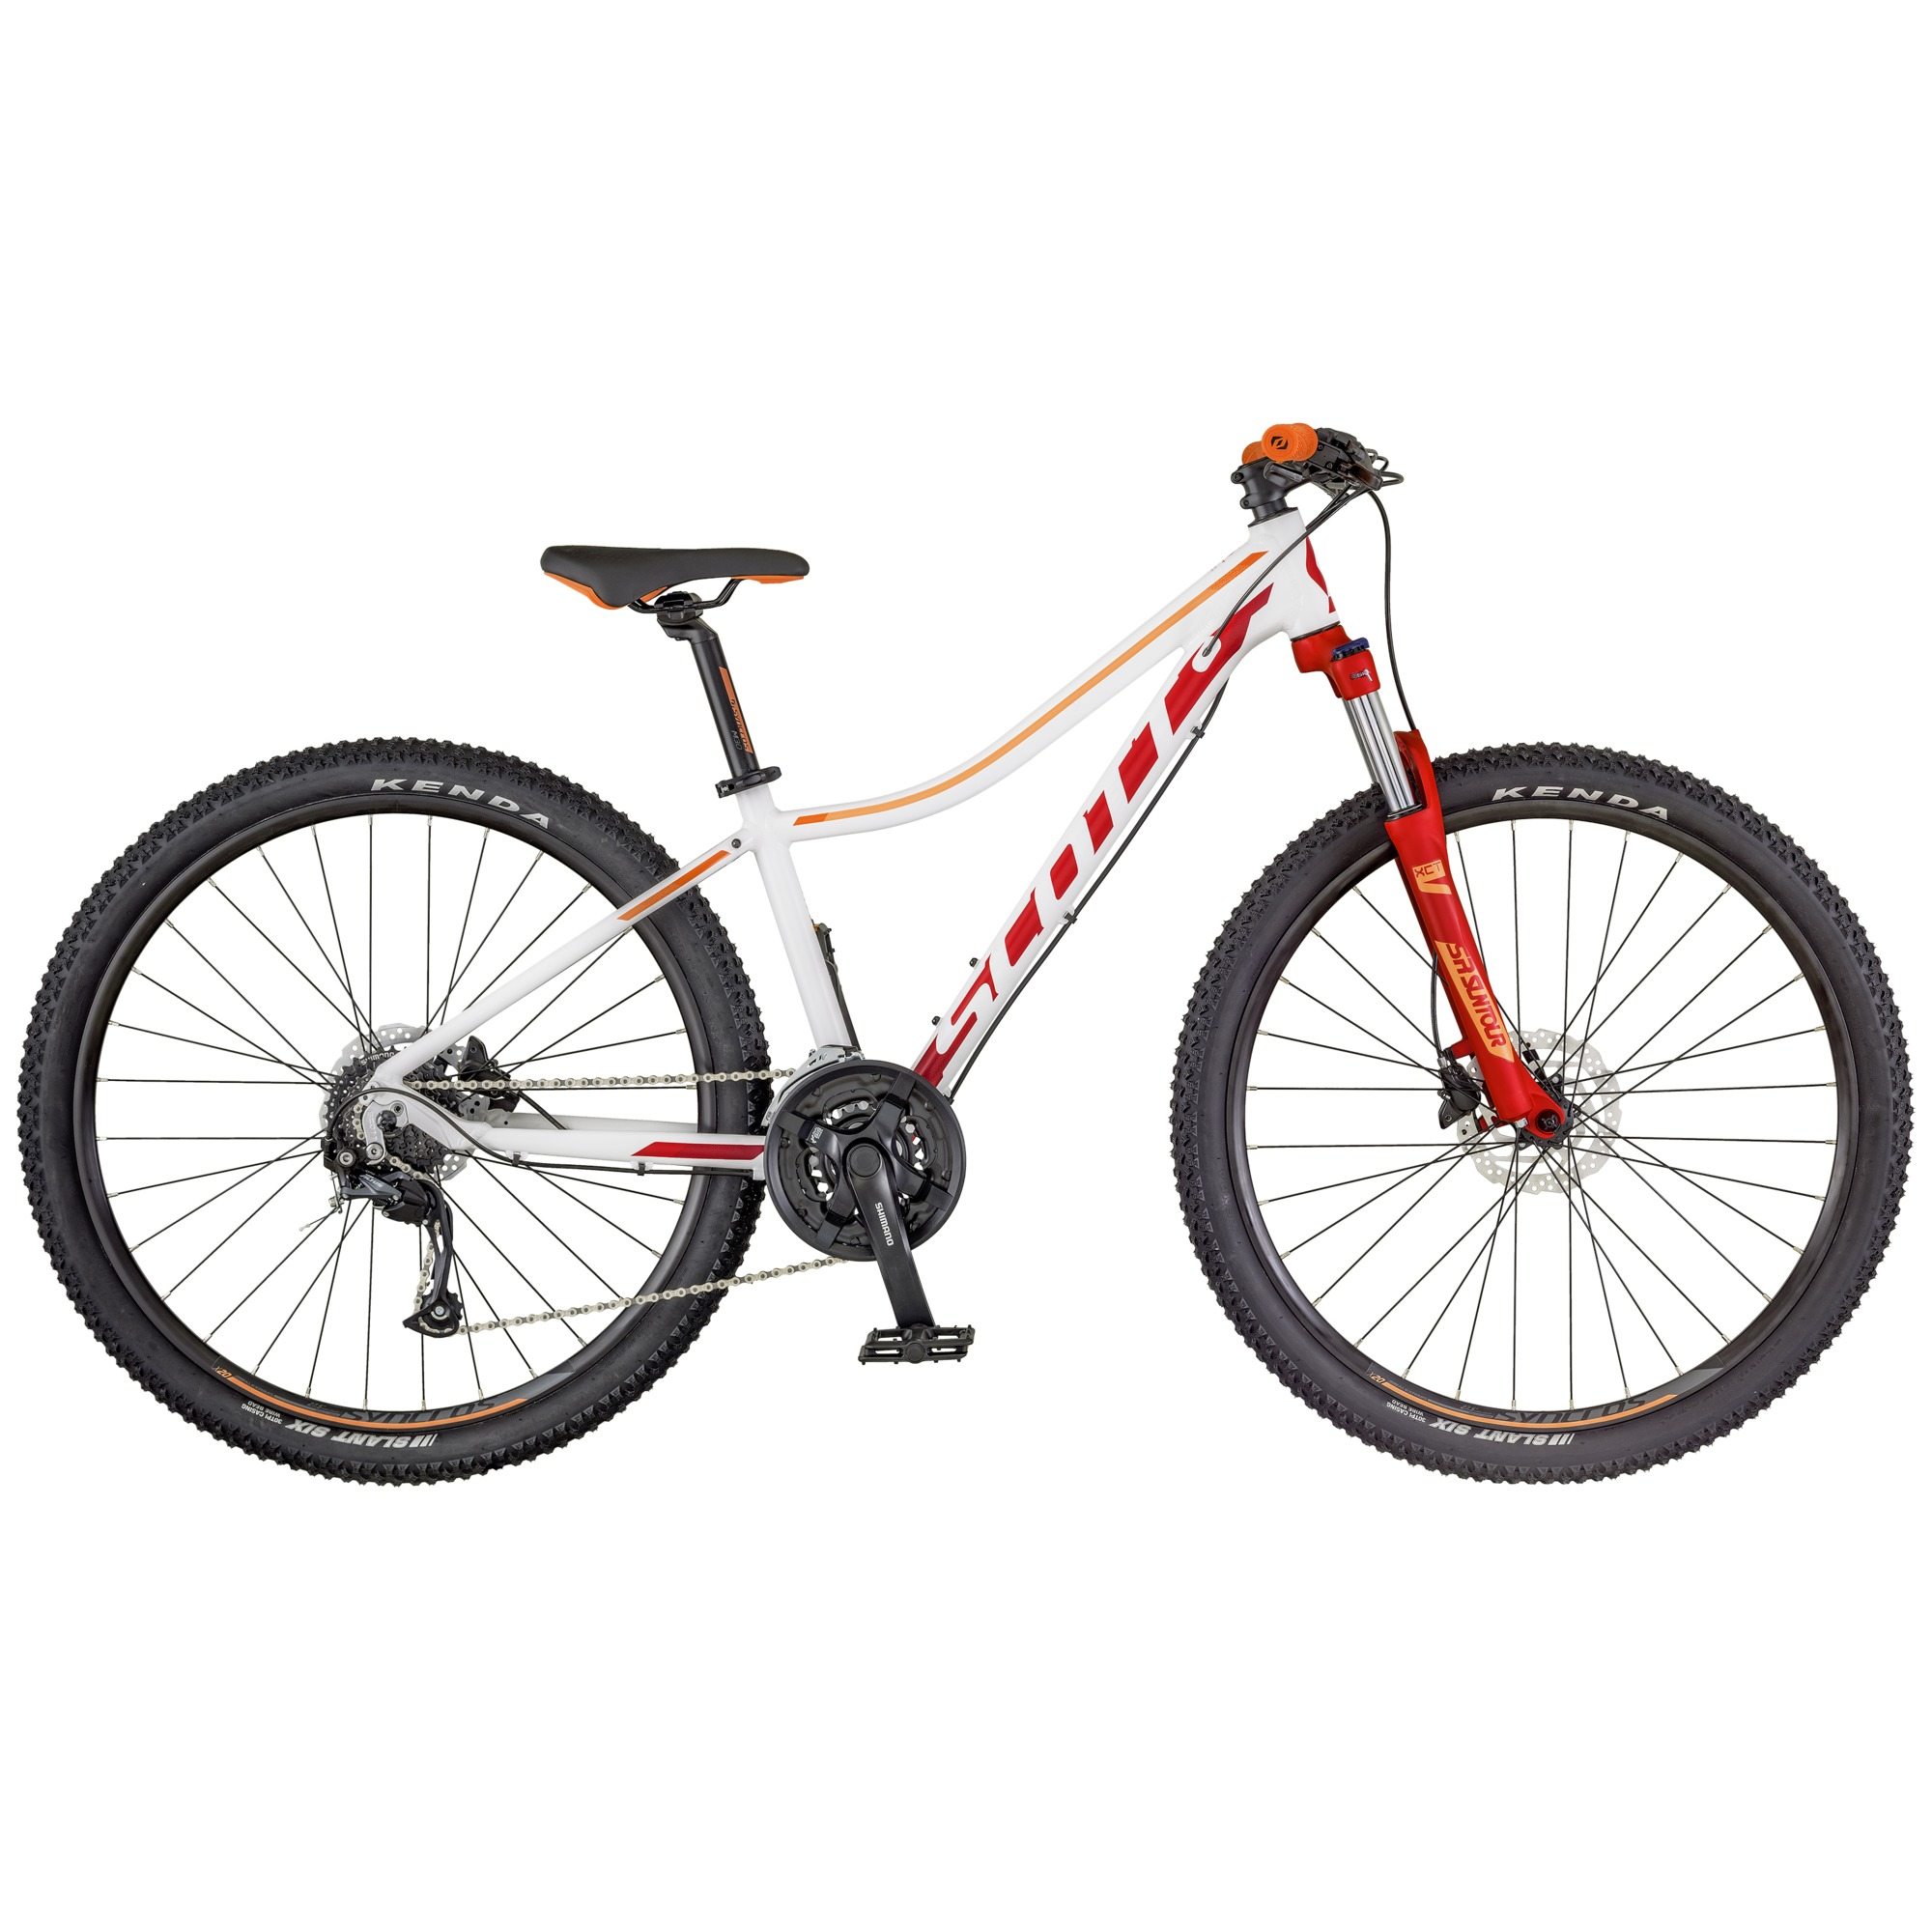 SCOTT Contessa 720 Bike white/peach S - SCOTT Contessa 720 Bike white/peach S